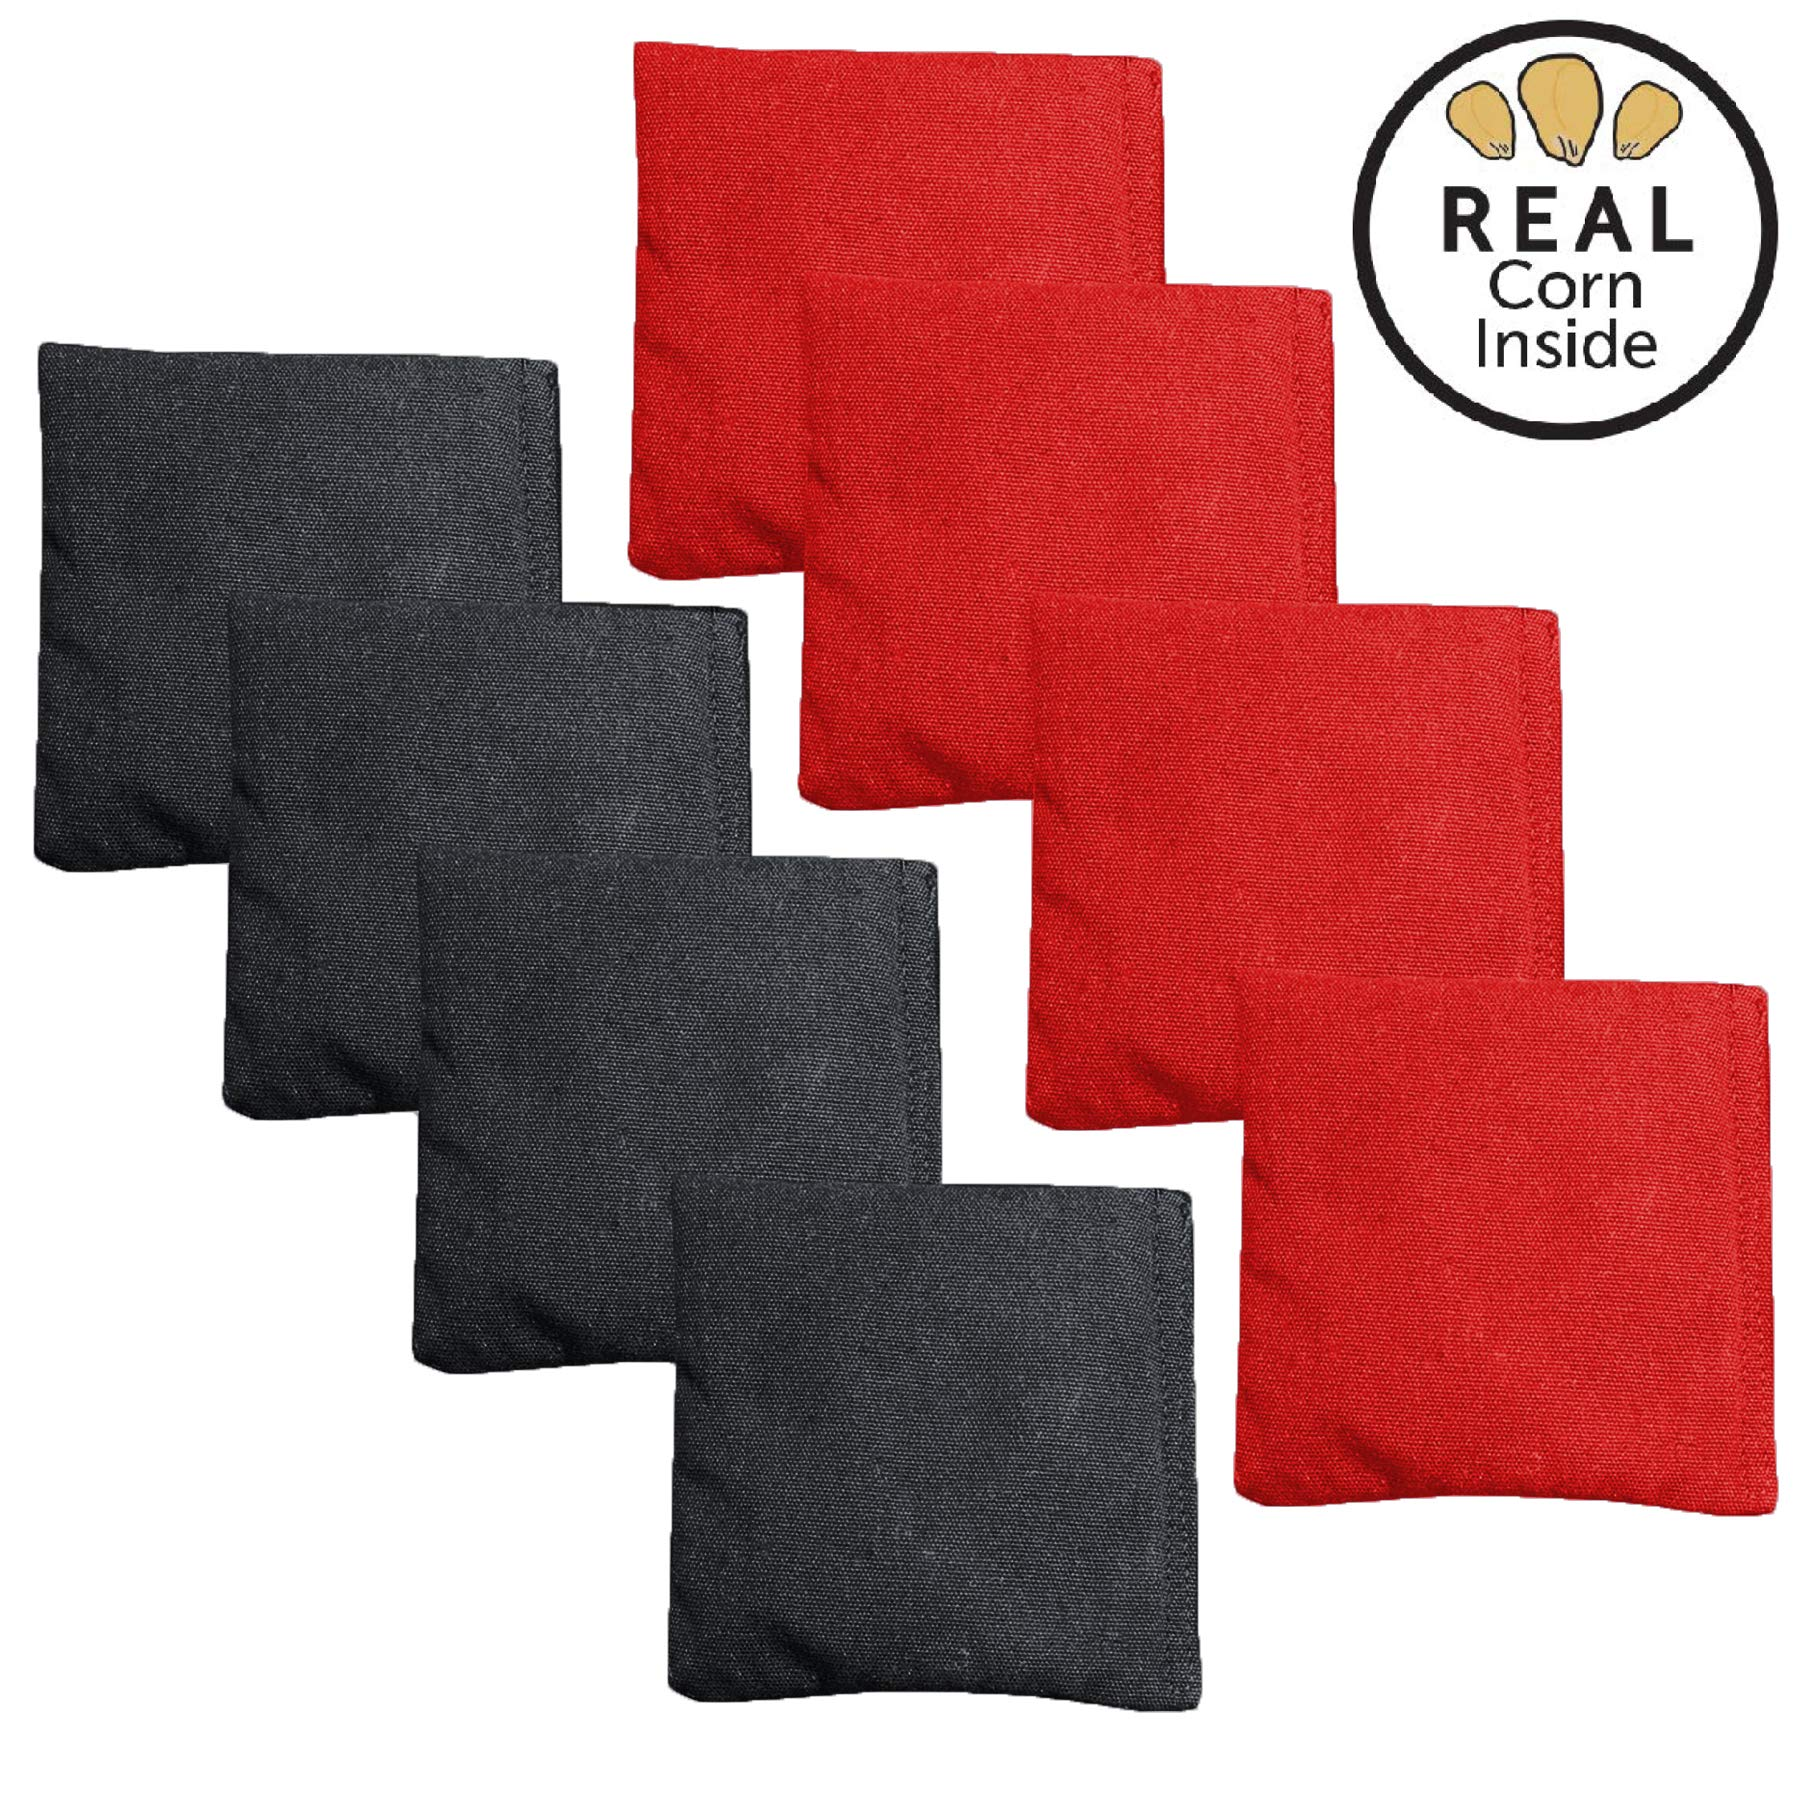 Corn Filled Cornhole Bags - Set of 8 Bean Bags for Corn Hole Game - Regulation Size & Weight - Red and Black by Play Platoon